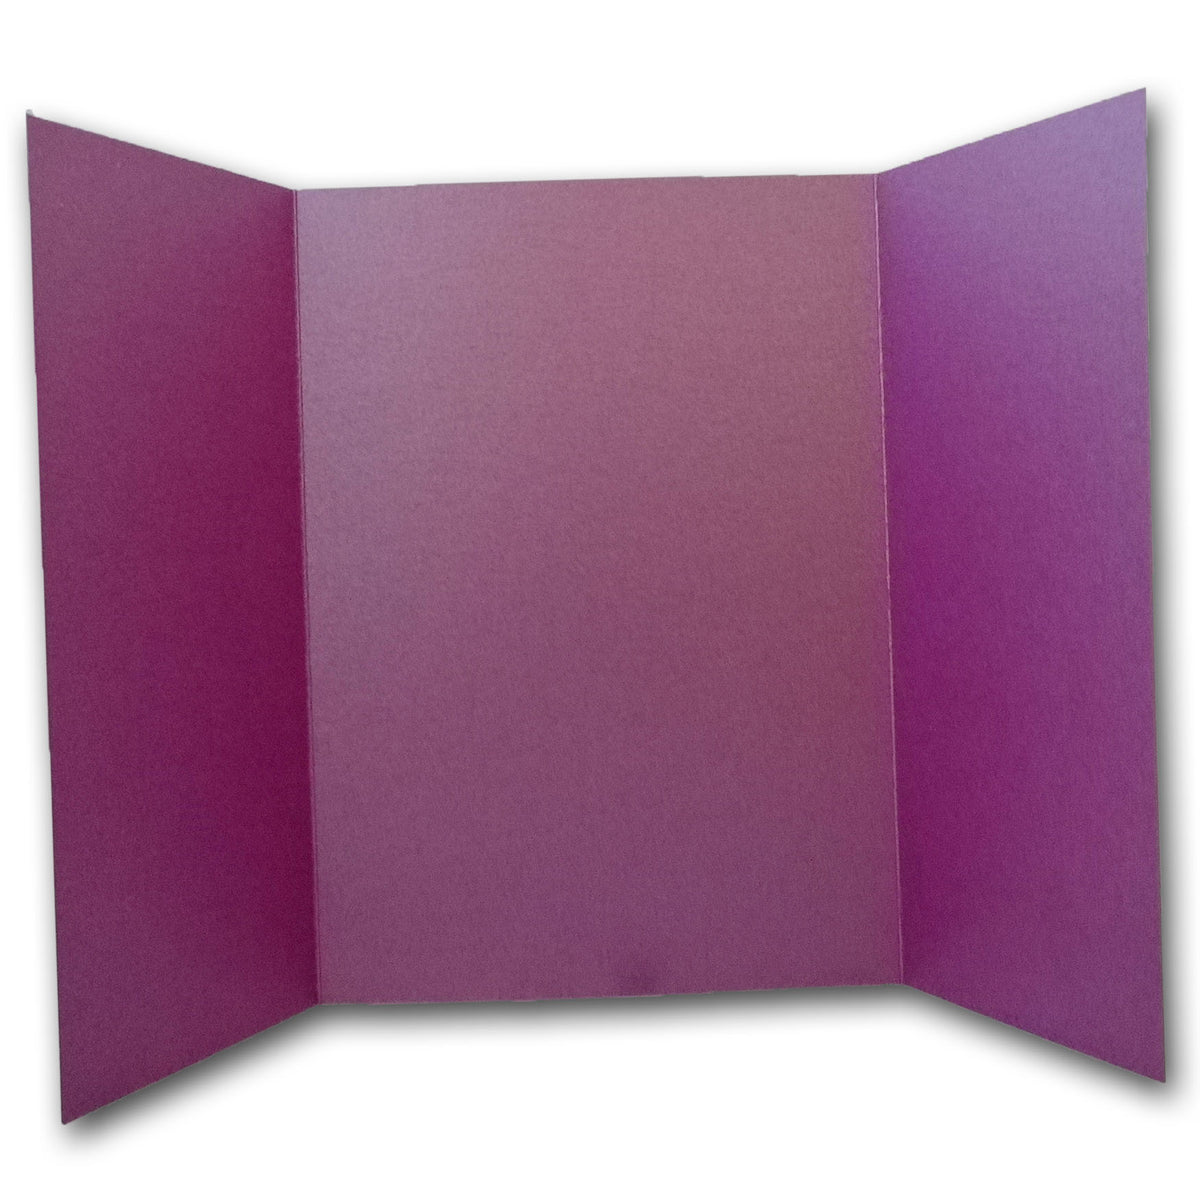 Shimmery Purple Punch 5x7 Gatefold Discount Card Stock DIY Invitations